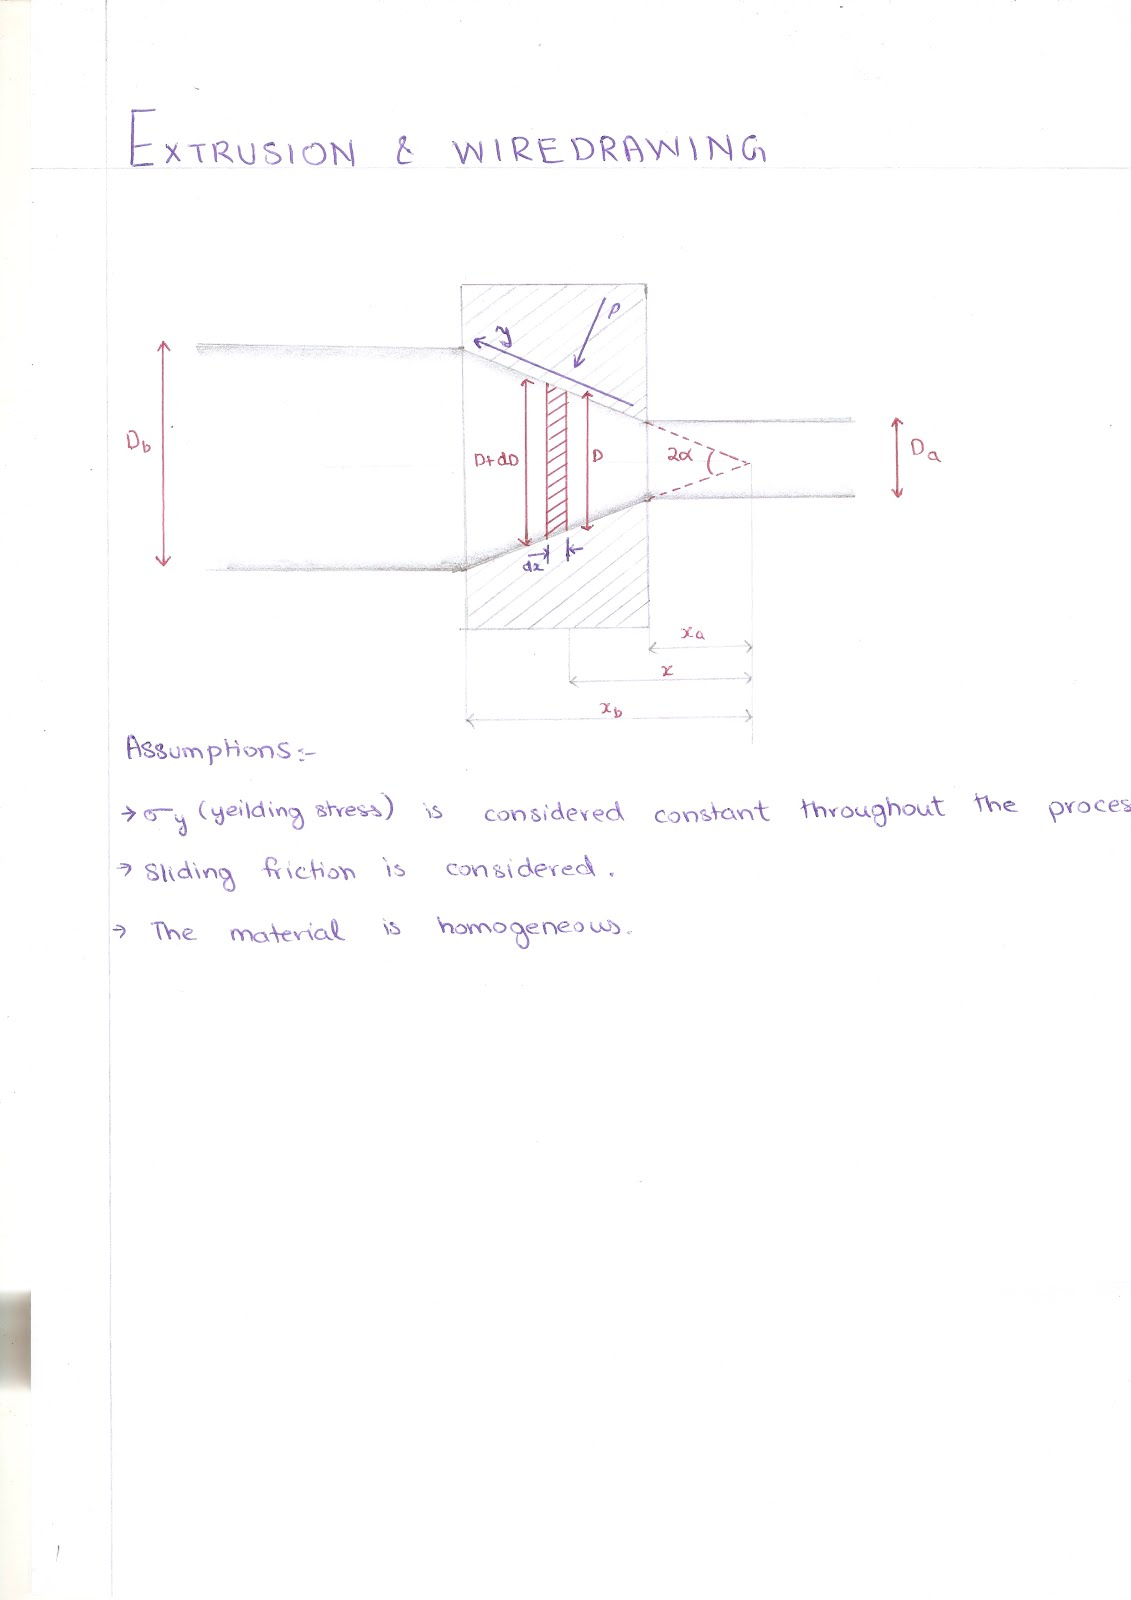 DERIVATION OF WIRE DRAWING AND EXTRUSION CALCULATION